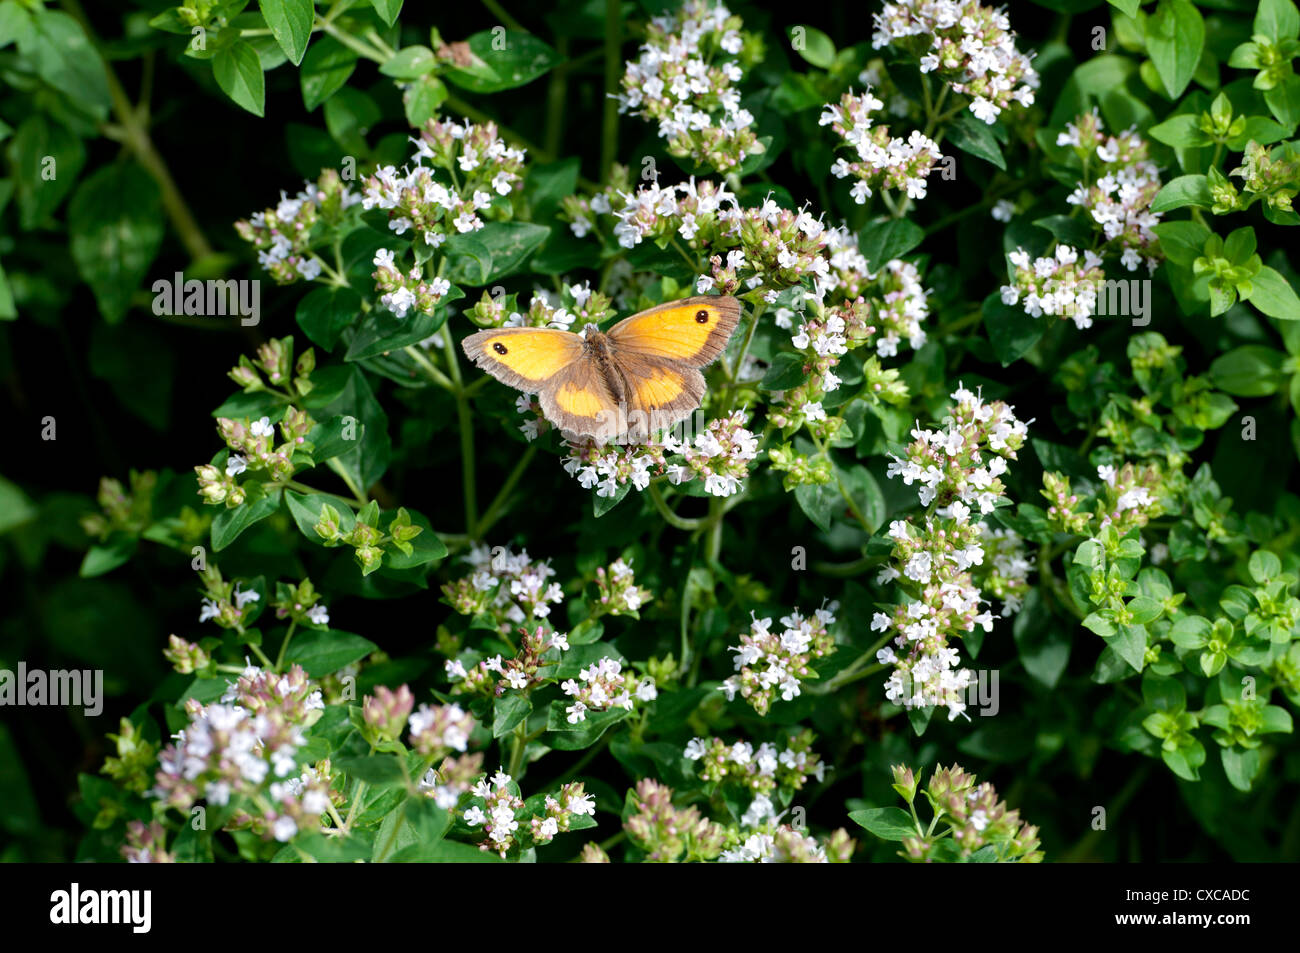 Hedge Brown or Gatekeeper butterfly (Pyronia tithonus) on Marjoram plant - Stock Image